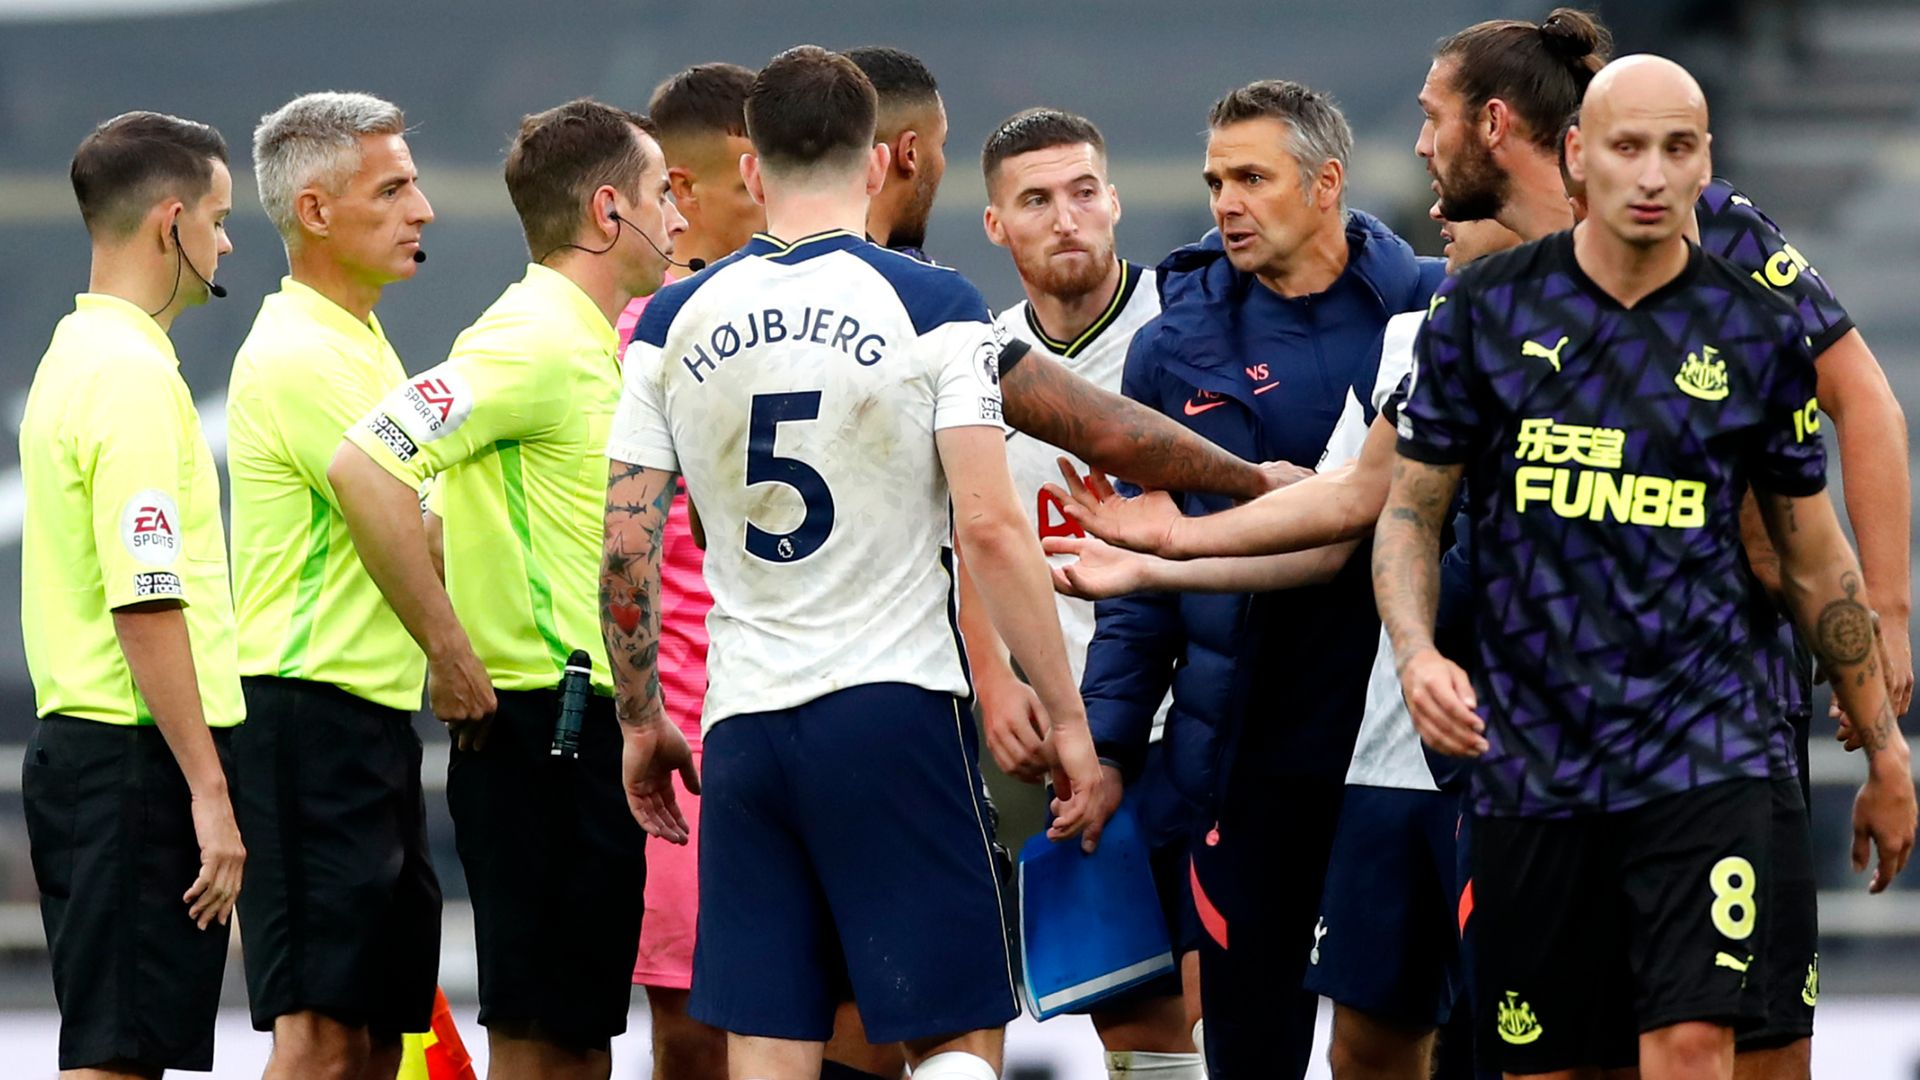 Spurs coach Santos handed one-match ban